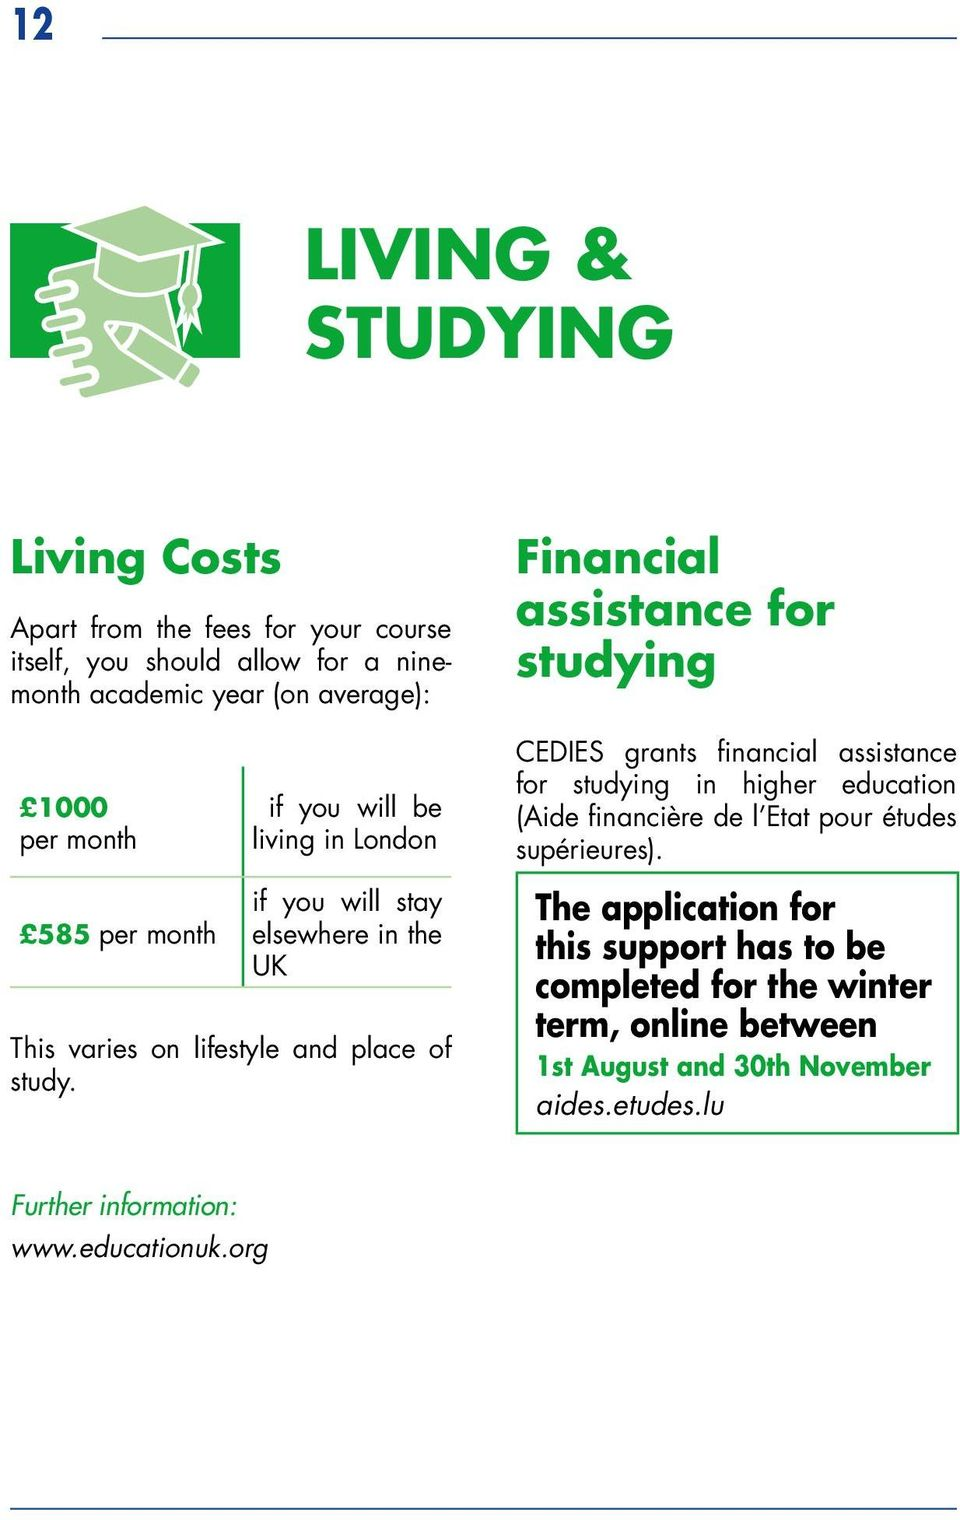 Studying In The United Kingdom Ireland Pdf 360 Degreepass Diagram Success Financire De L Etat Pour Tudes Suprieures 585 Per Month If You Will Stay